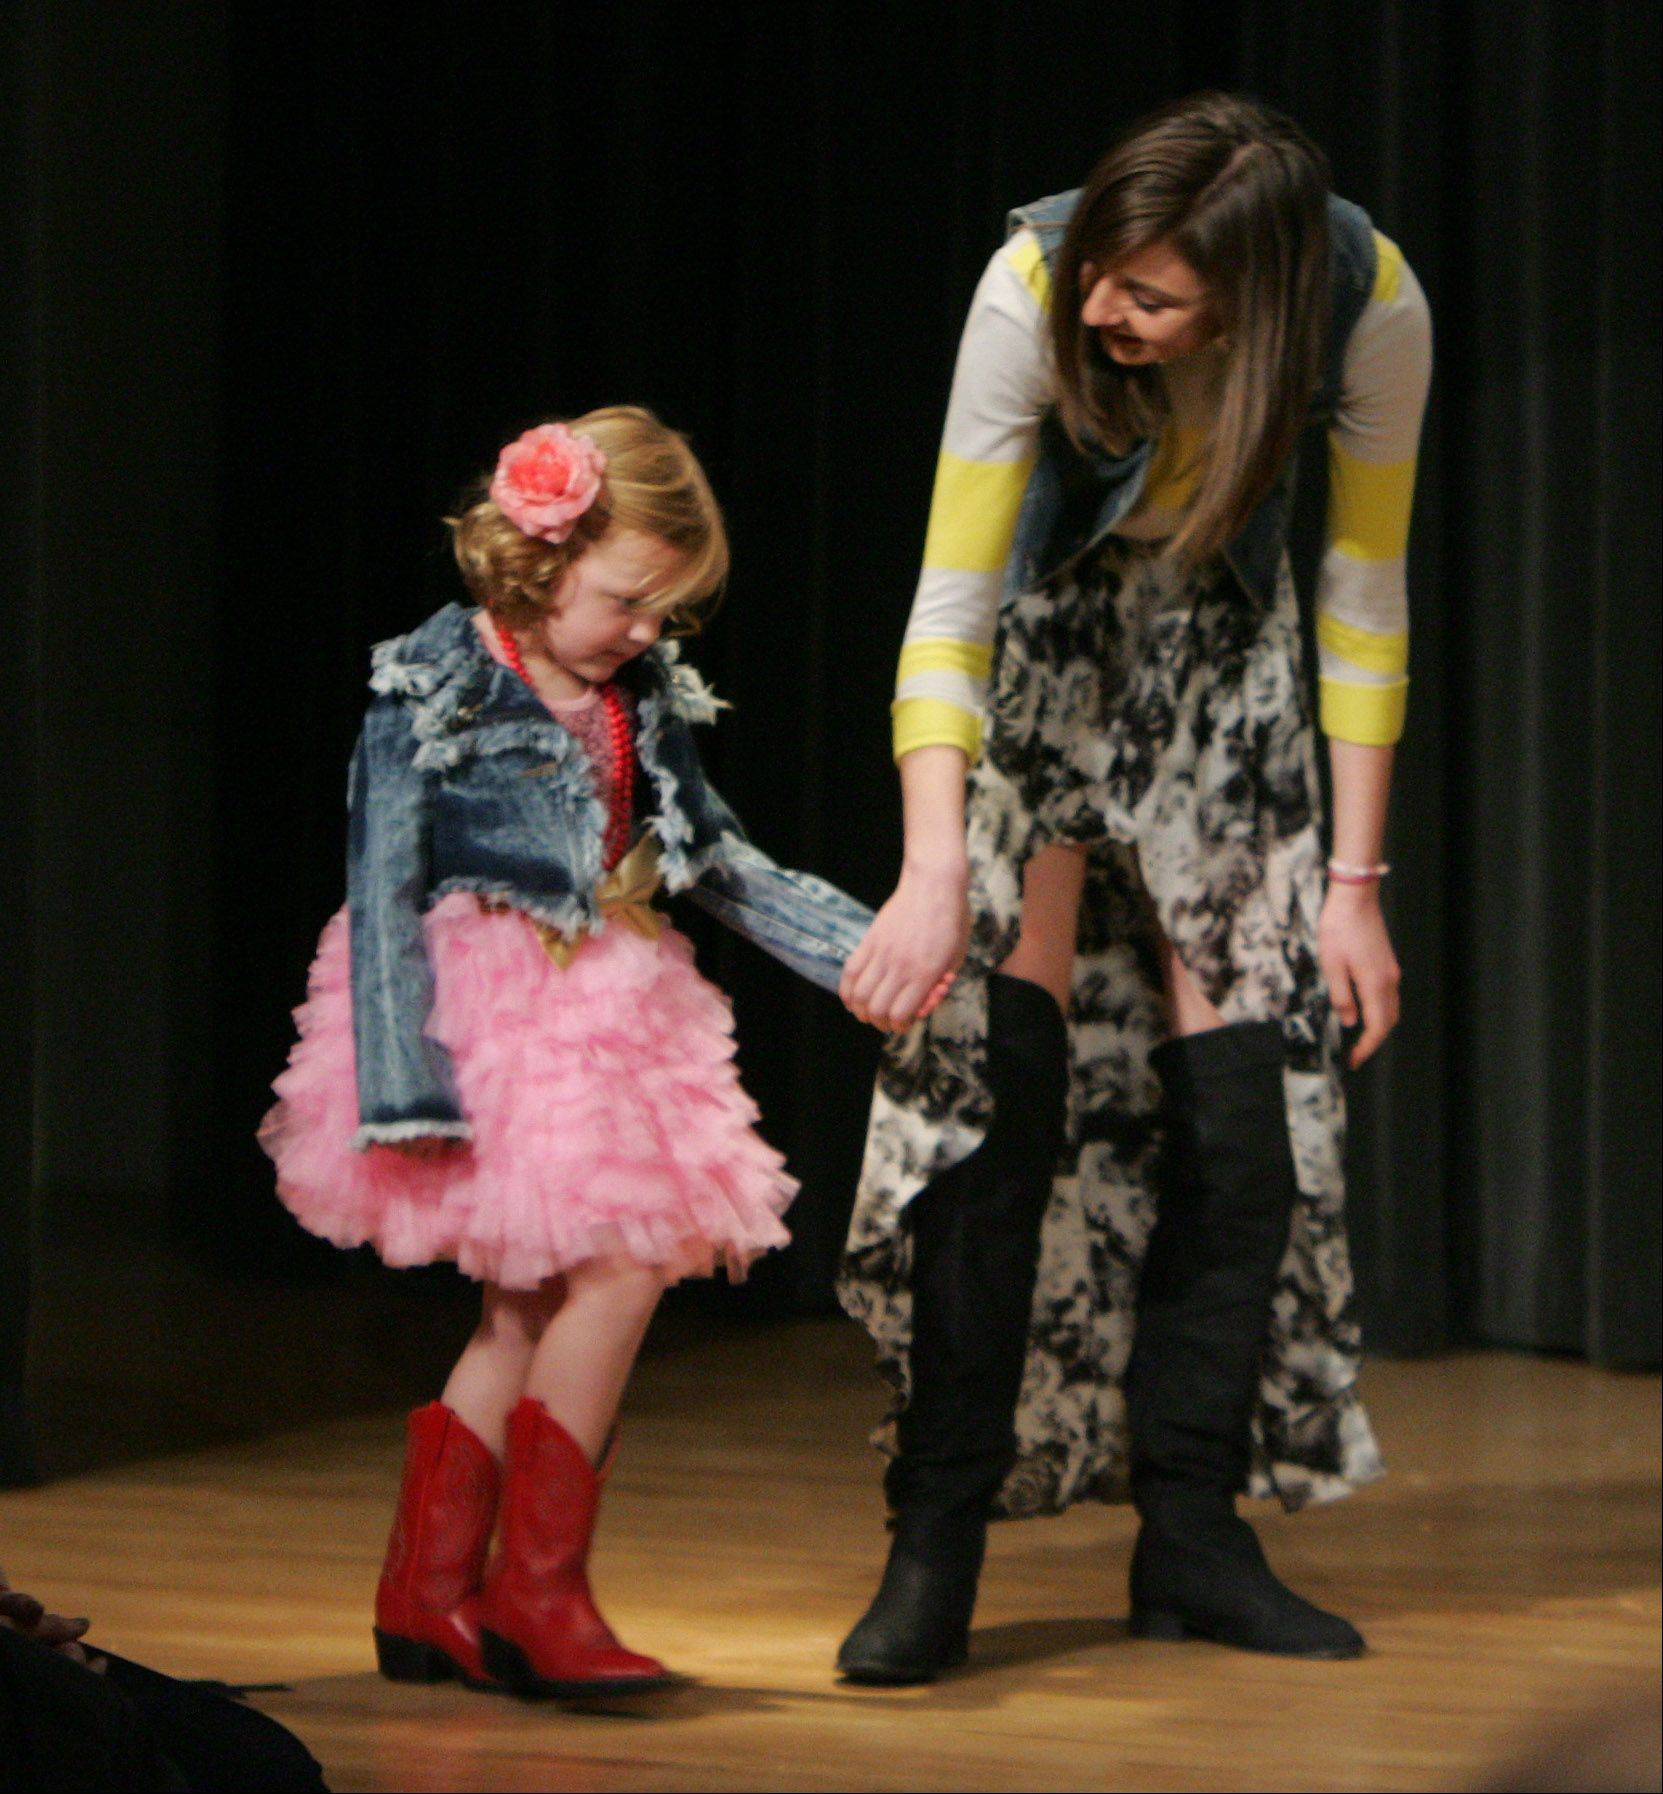 Designer Maddy Gustafson helps the shy Phoebe Welsh walk down the runway Sunday during the first student-run charity fashion show, �Hope�s In Style,� at the Garland�s Center for the Performing Arts in Barrington. The fashion show raised funds for a Guatemalan family living in a garbage dump in Guatemala City.